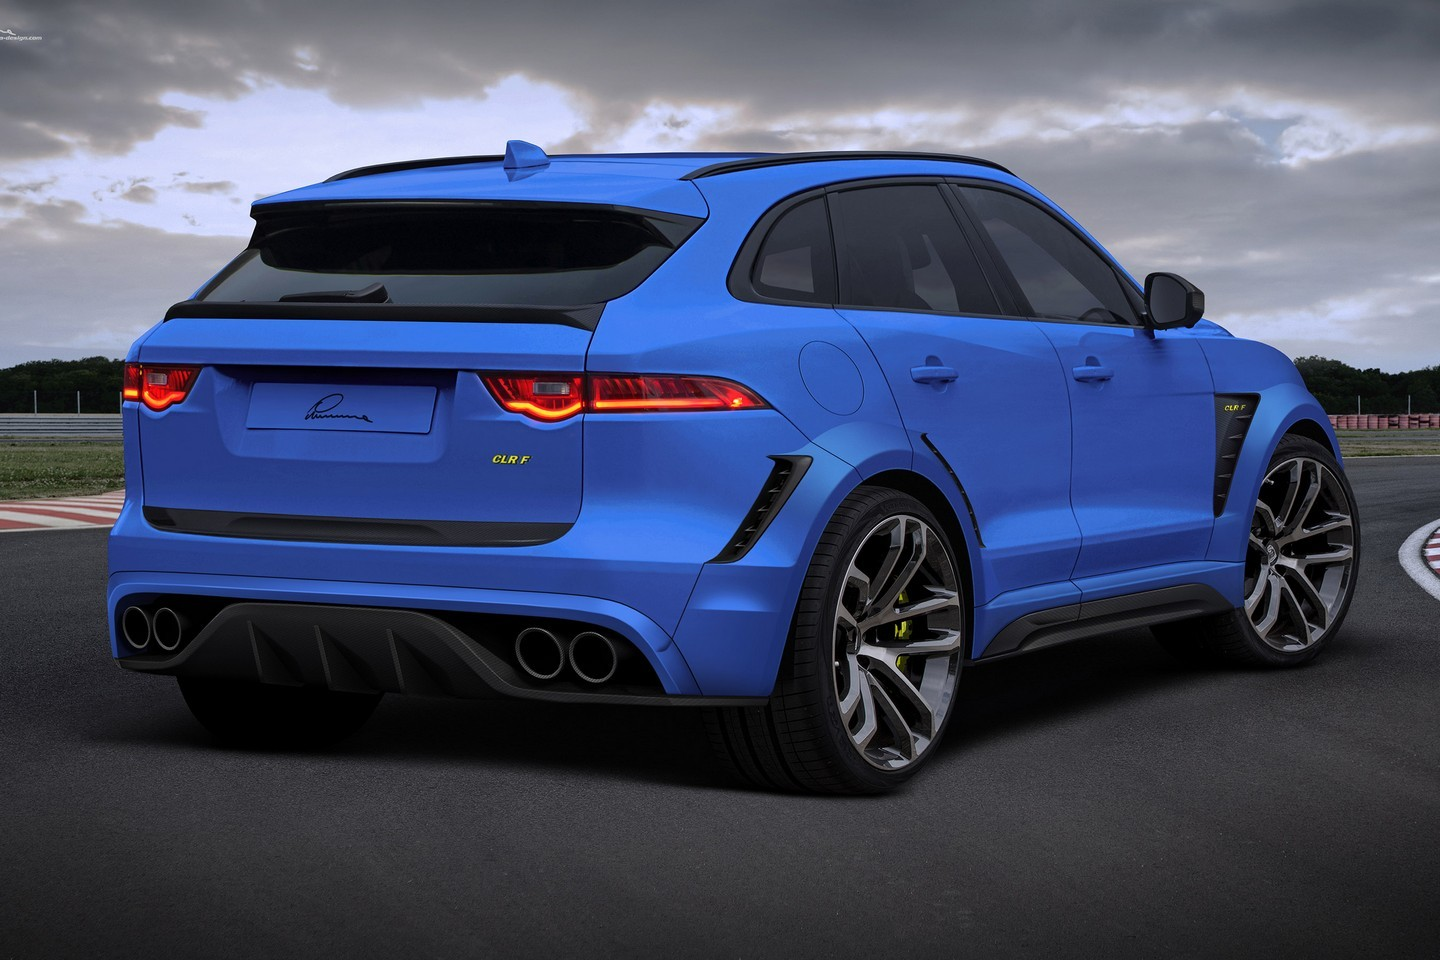 Jaguar F Pace Gets Widebody Kit And 24 Inch Wheels From Lumma Autoevolution